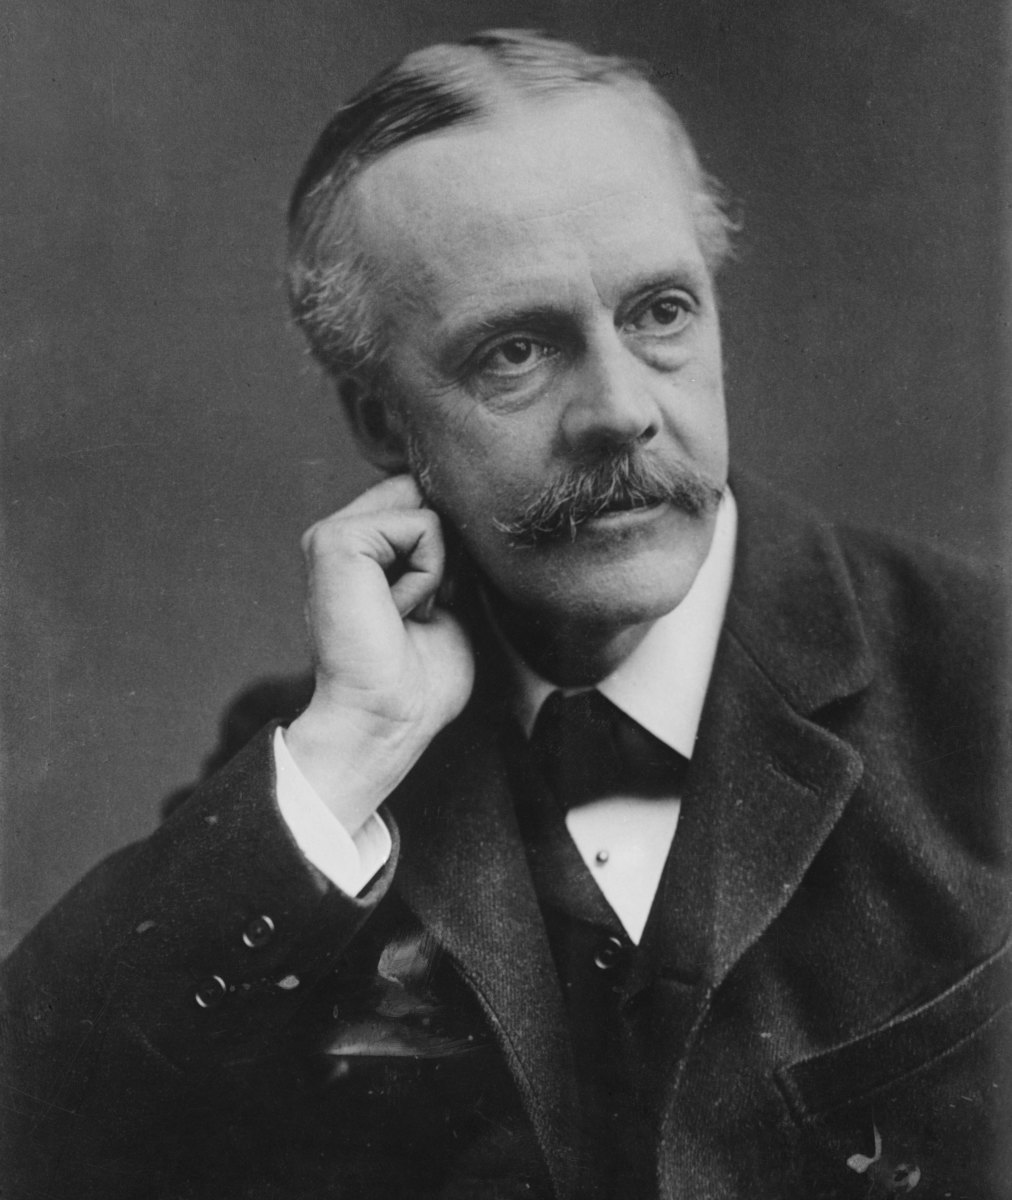 Arthur Balfour. The author of The Balfour Declaration.